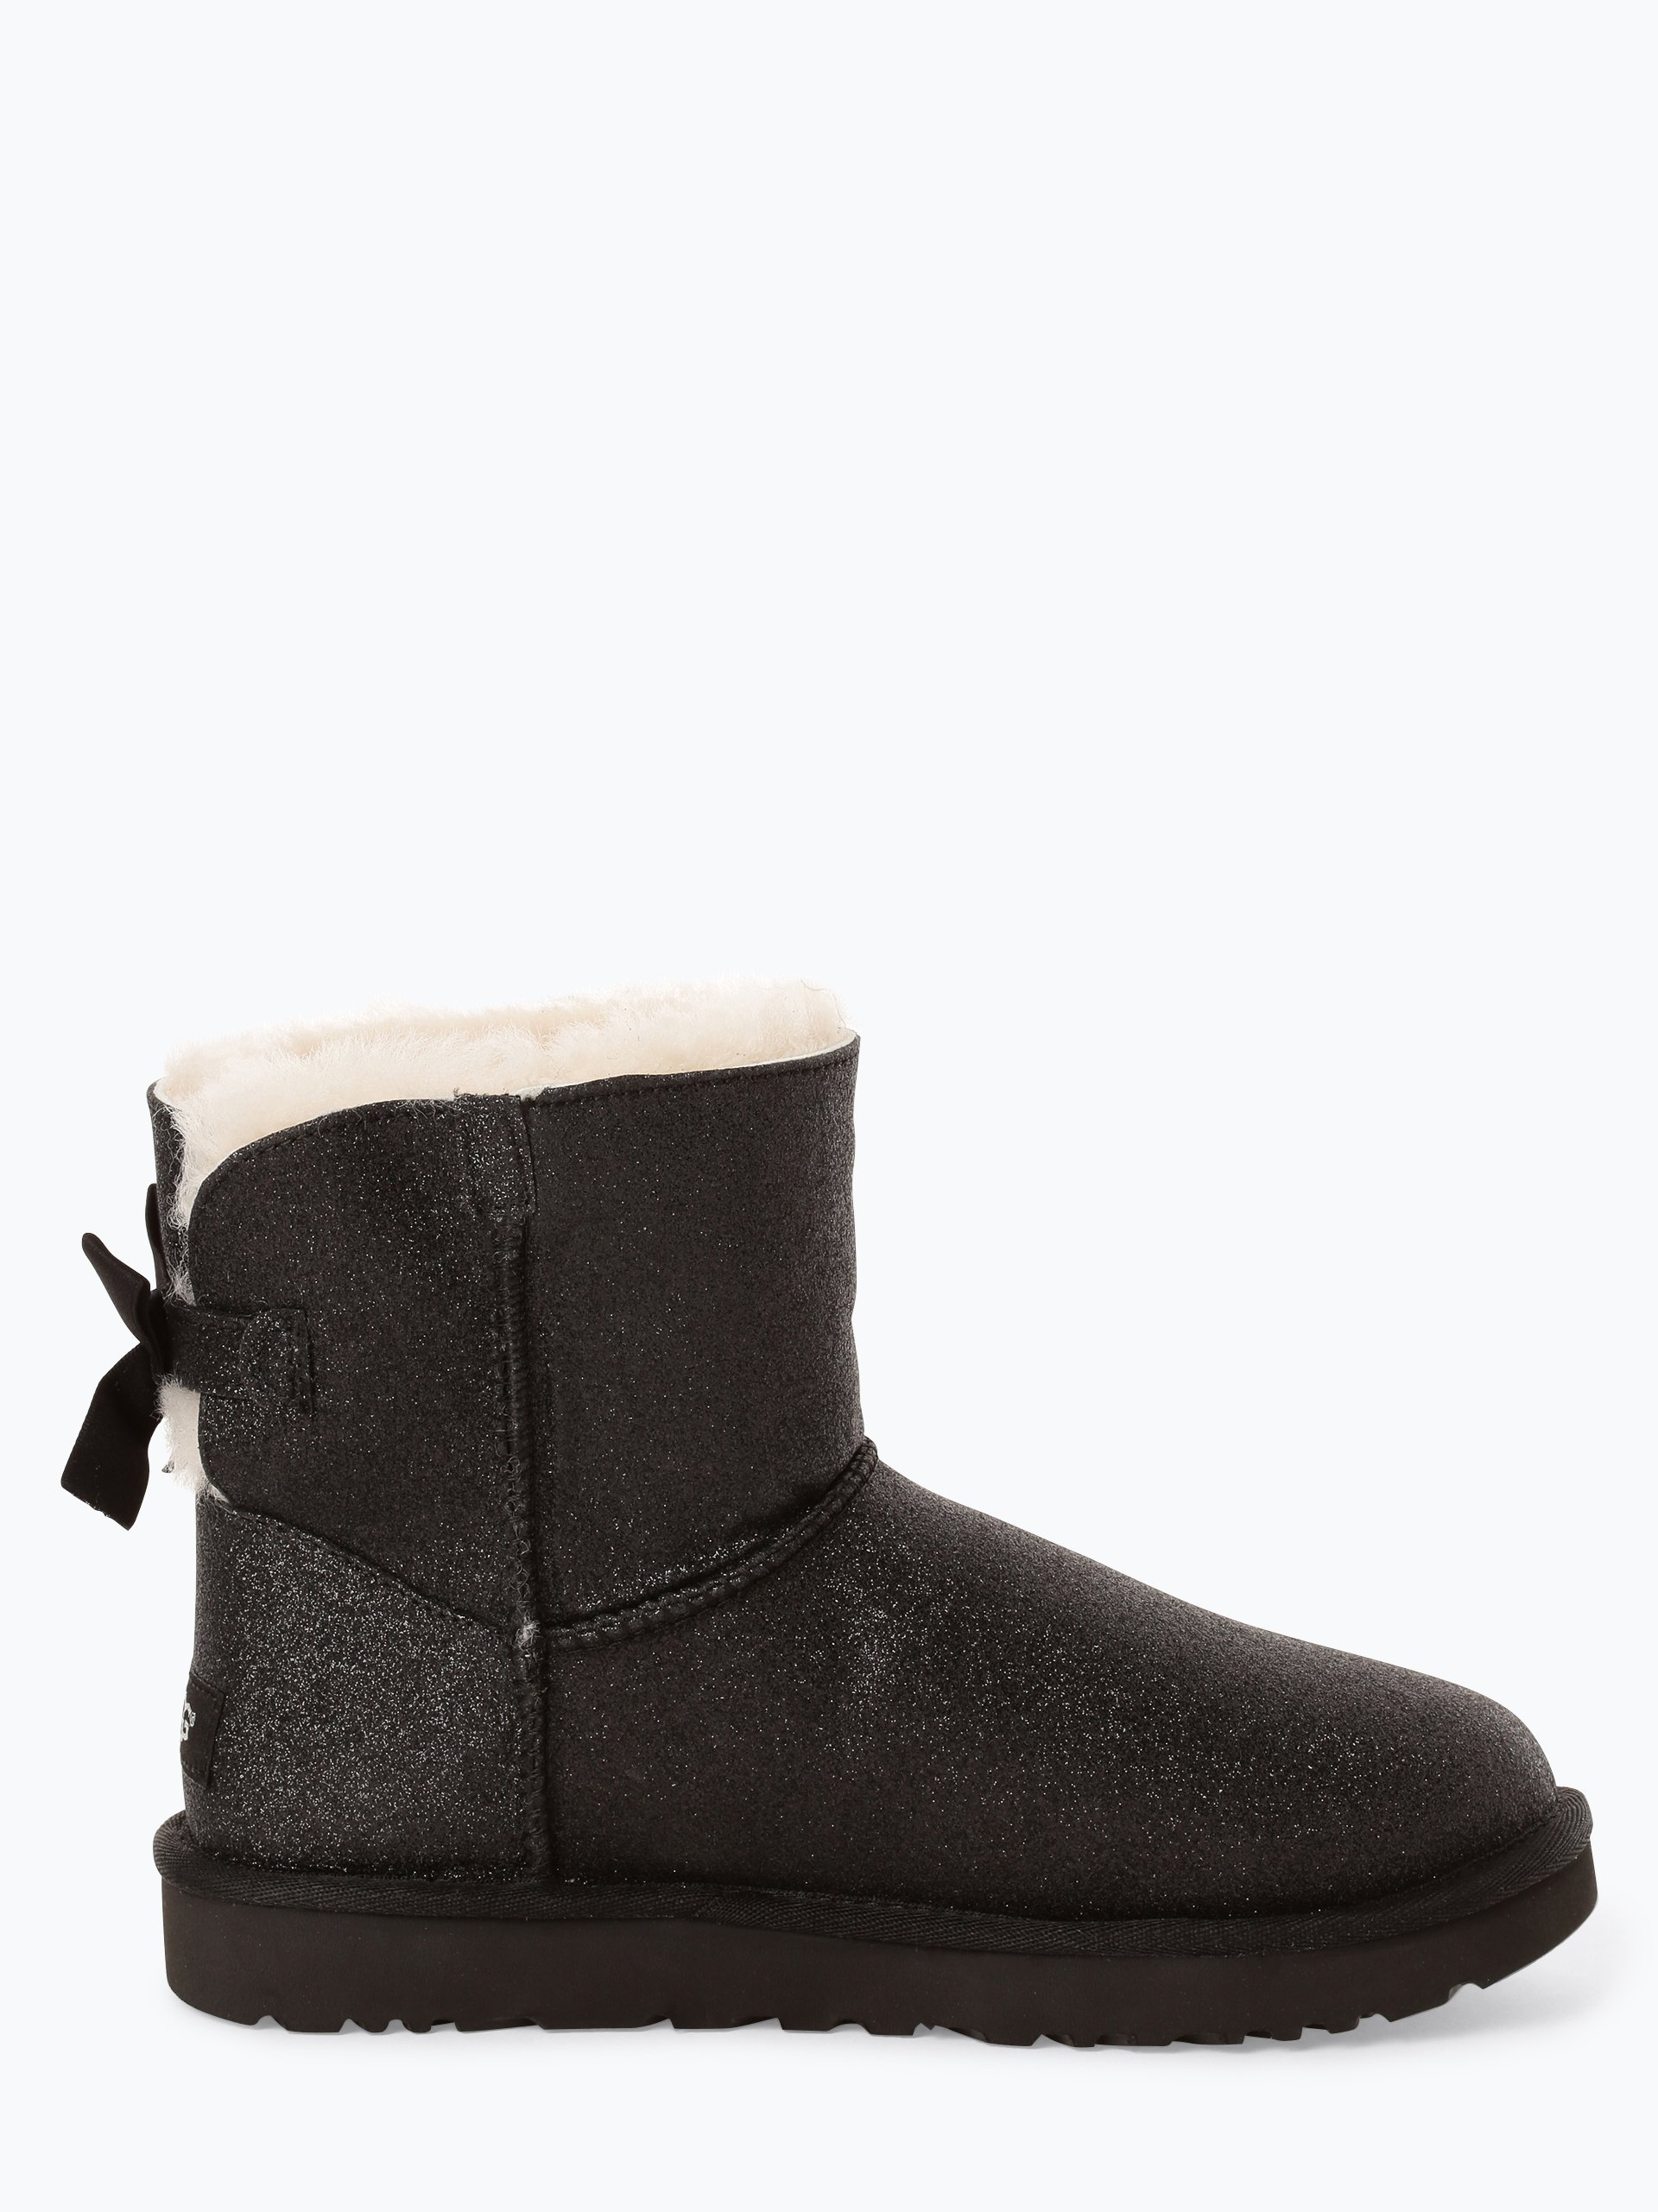 Ugg Damen Boots Mit Leder Anteil Mini Bailey Bow Sparkle